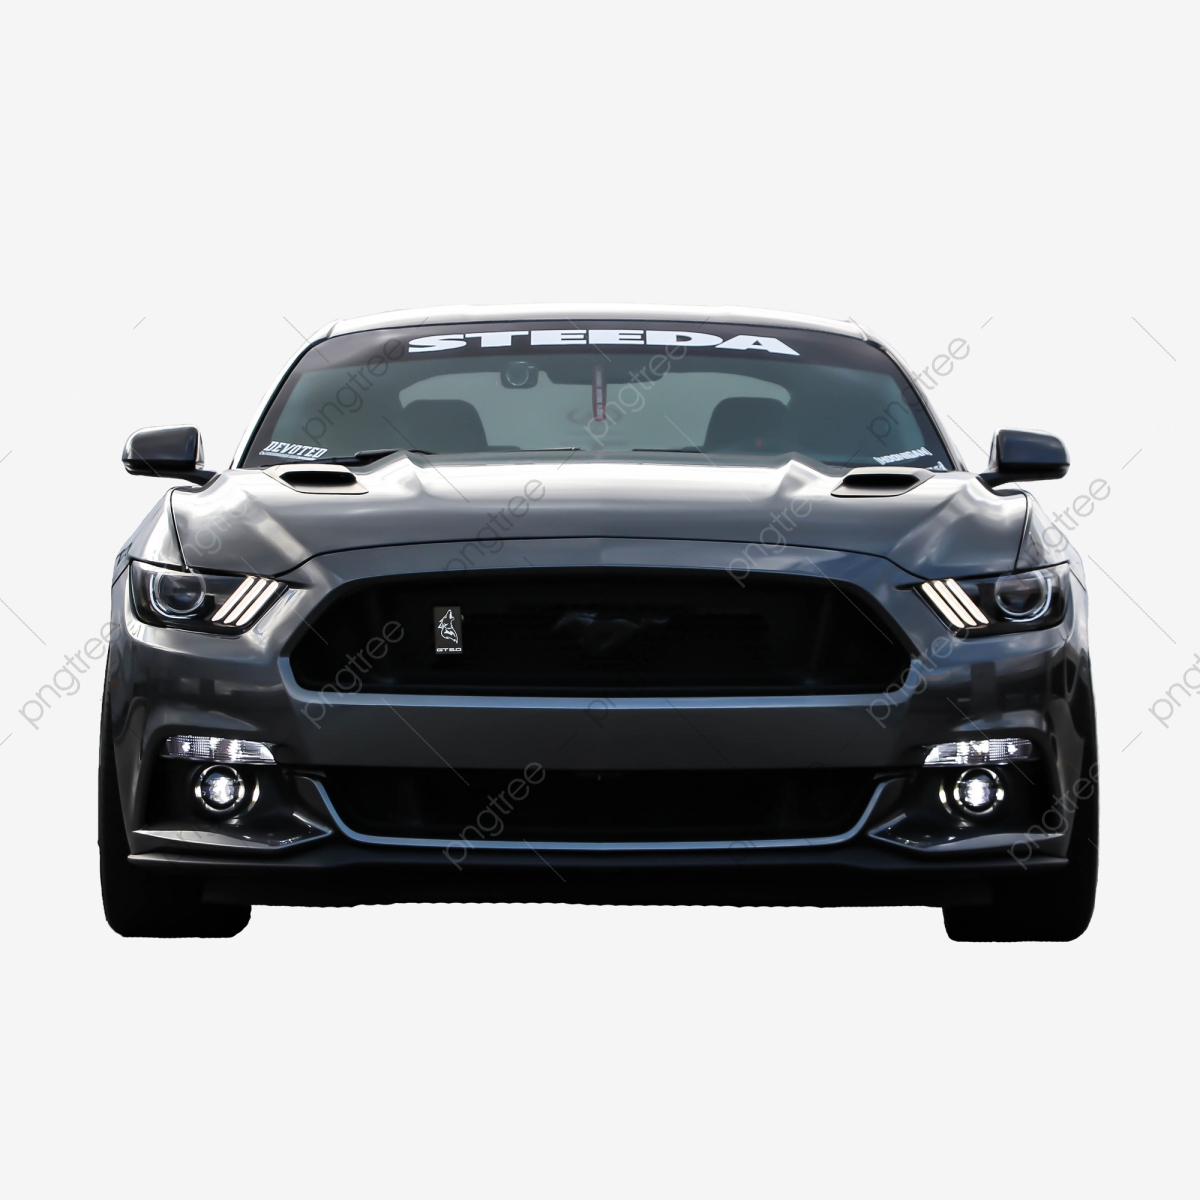 Black Ford Mustang Png, Car, Transportation, Png PNG.